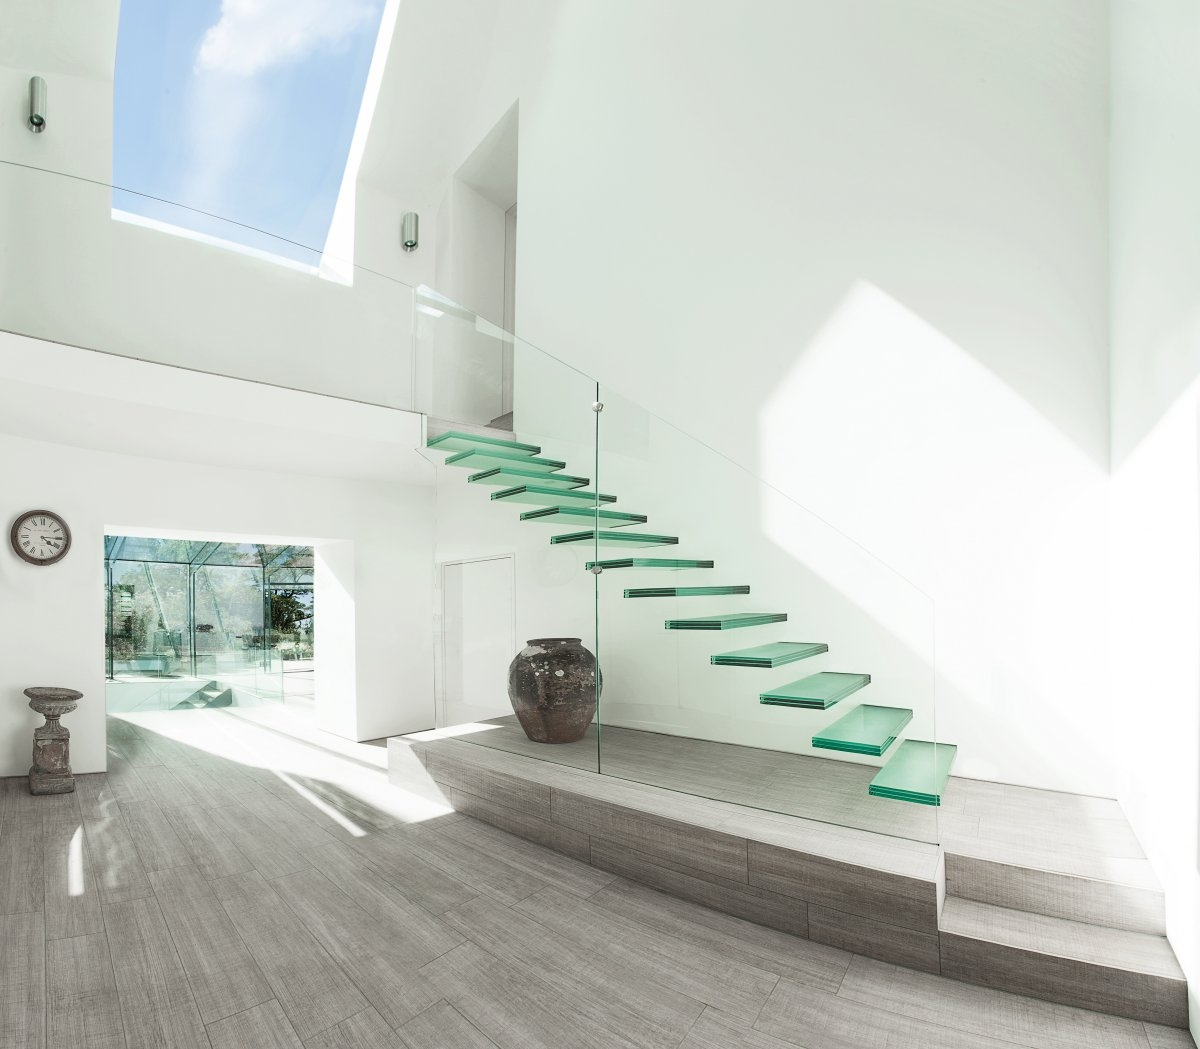 20 Glass Staircase Wall Designs With A Graceful Impact On The | Modern Staircase Window Design | Architecture | Small House Stair | Section Window | Elegant | Wooden